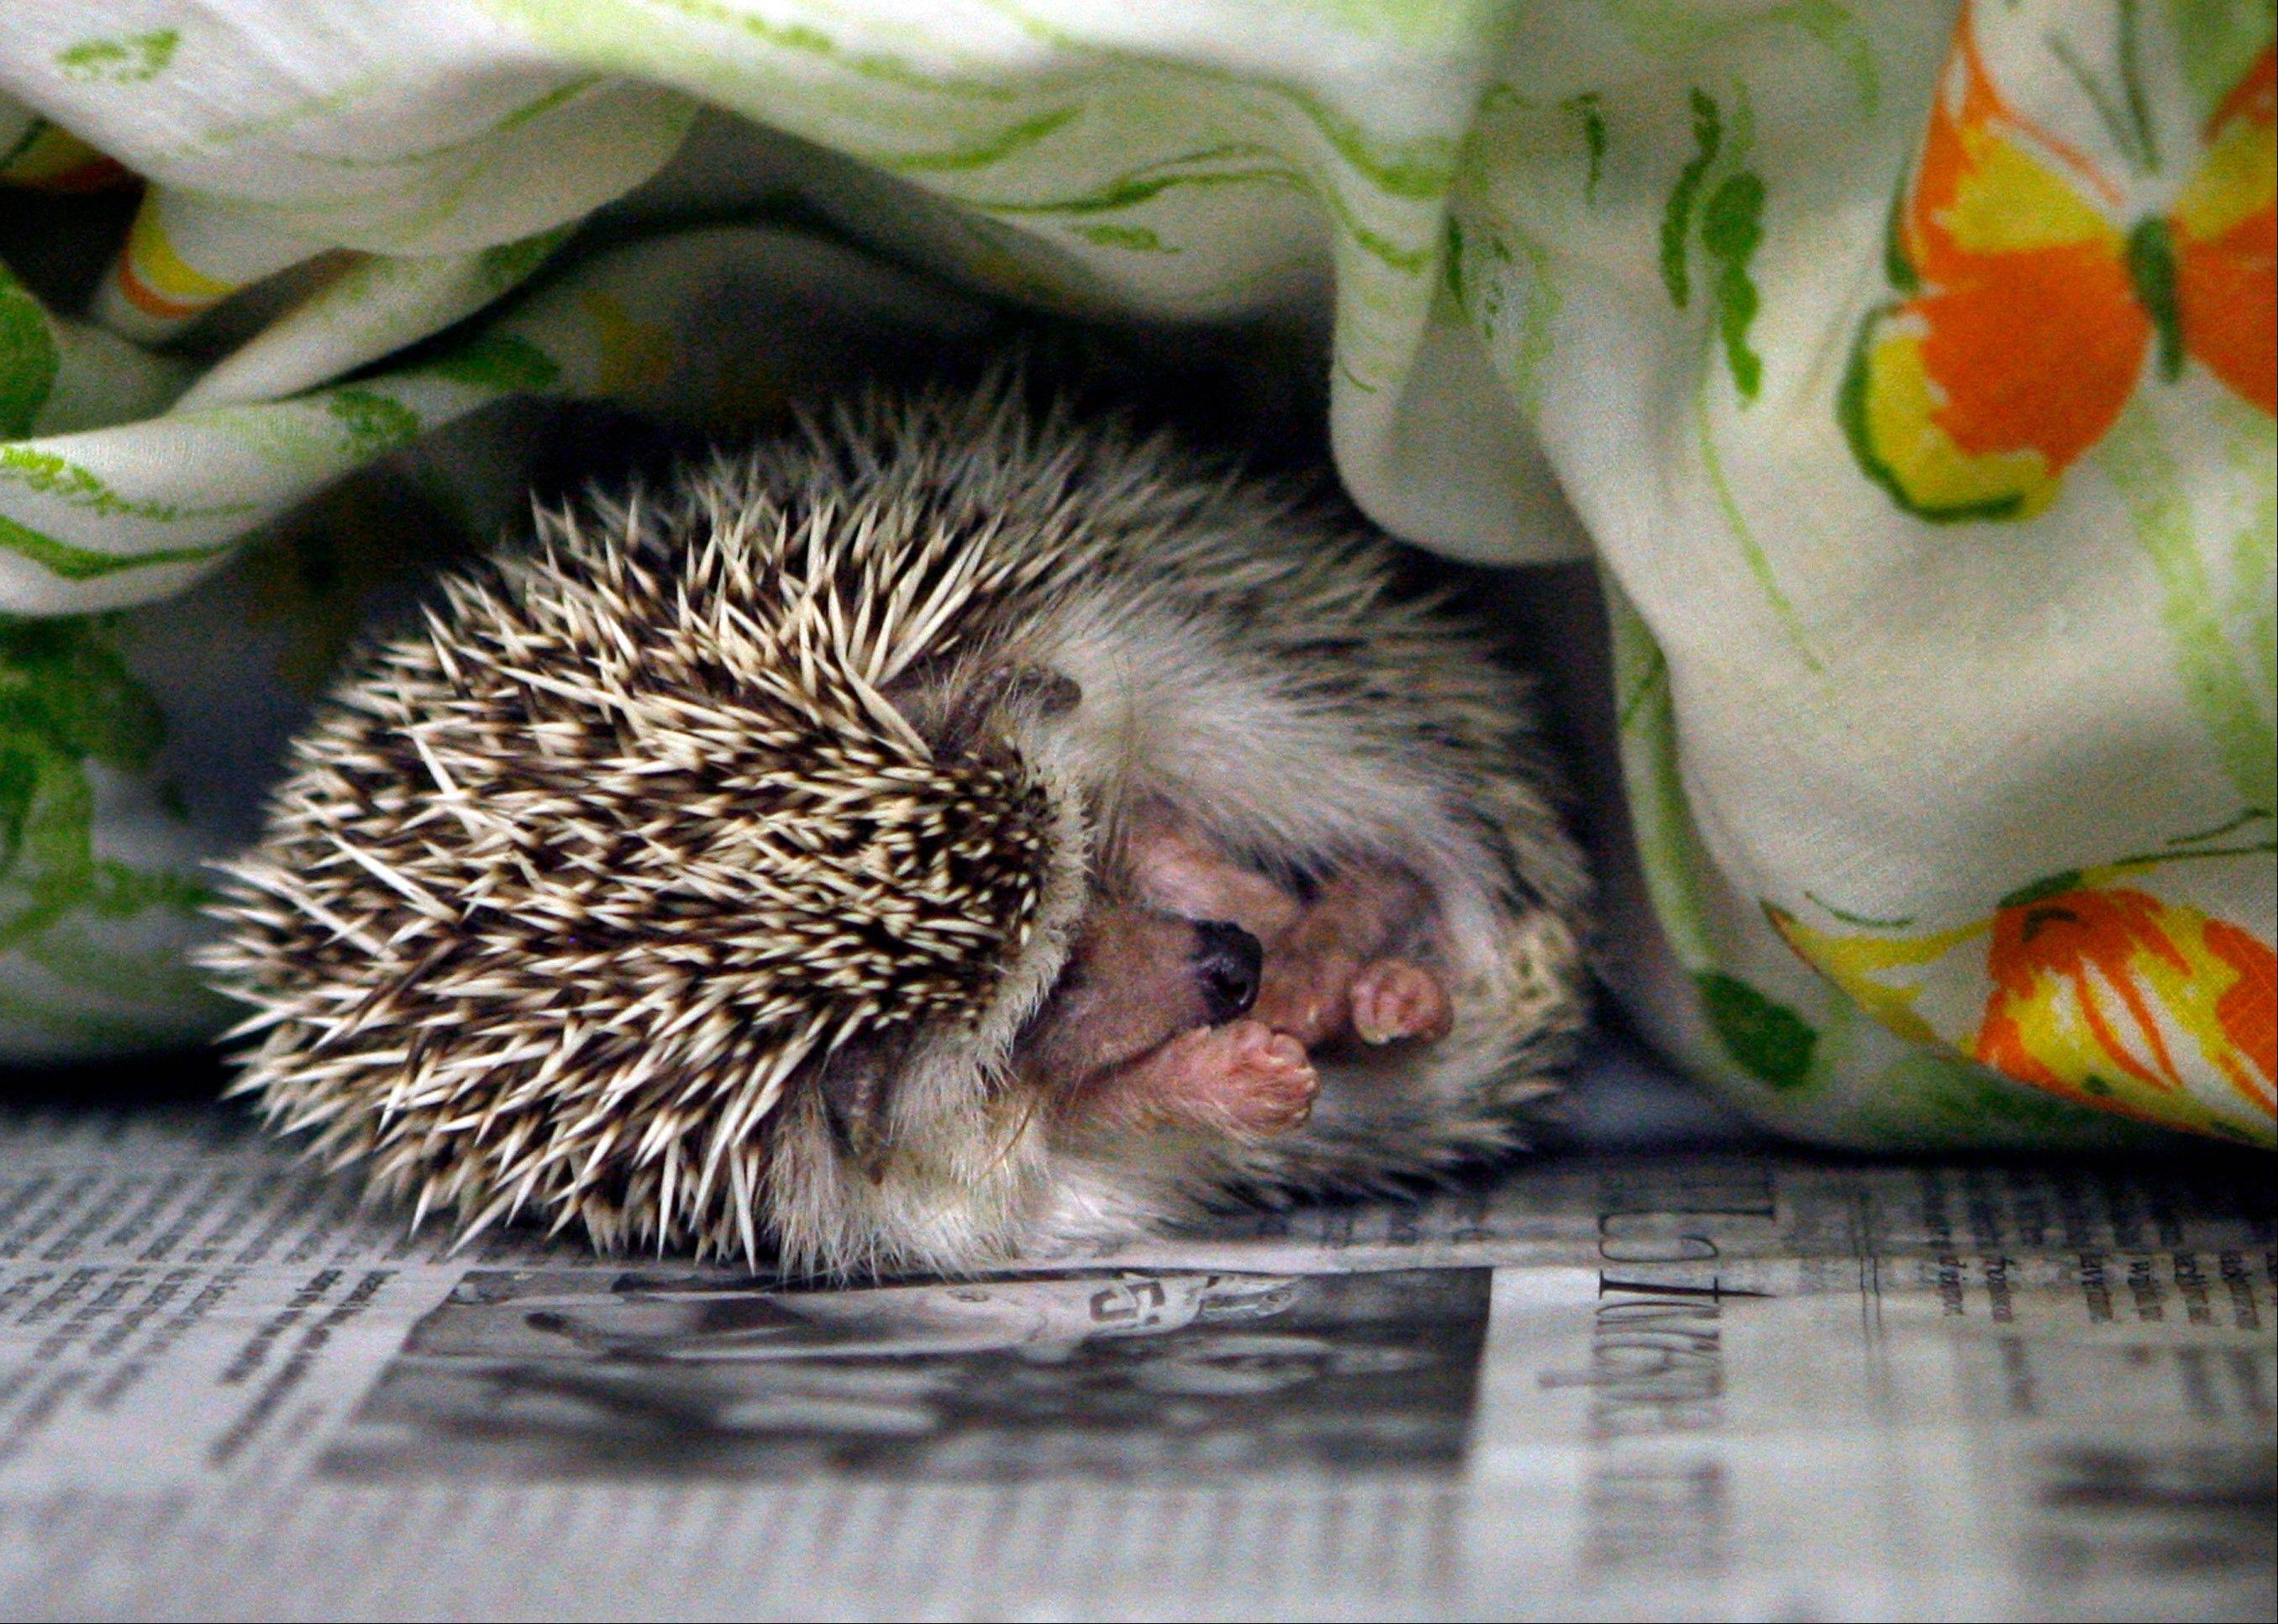 A hedgehog sleeps at the SPCA in Largo, Fla. In the last year, 20 people, including one in Illinois, were infected by a rare but dangerous form of salmonella bacteria, and one person died.